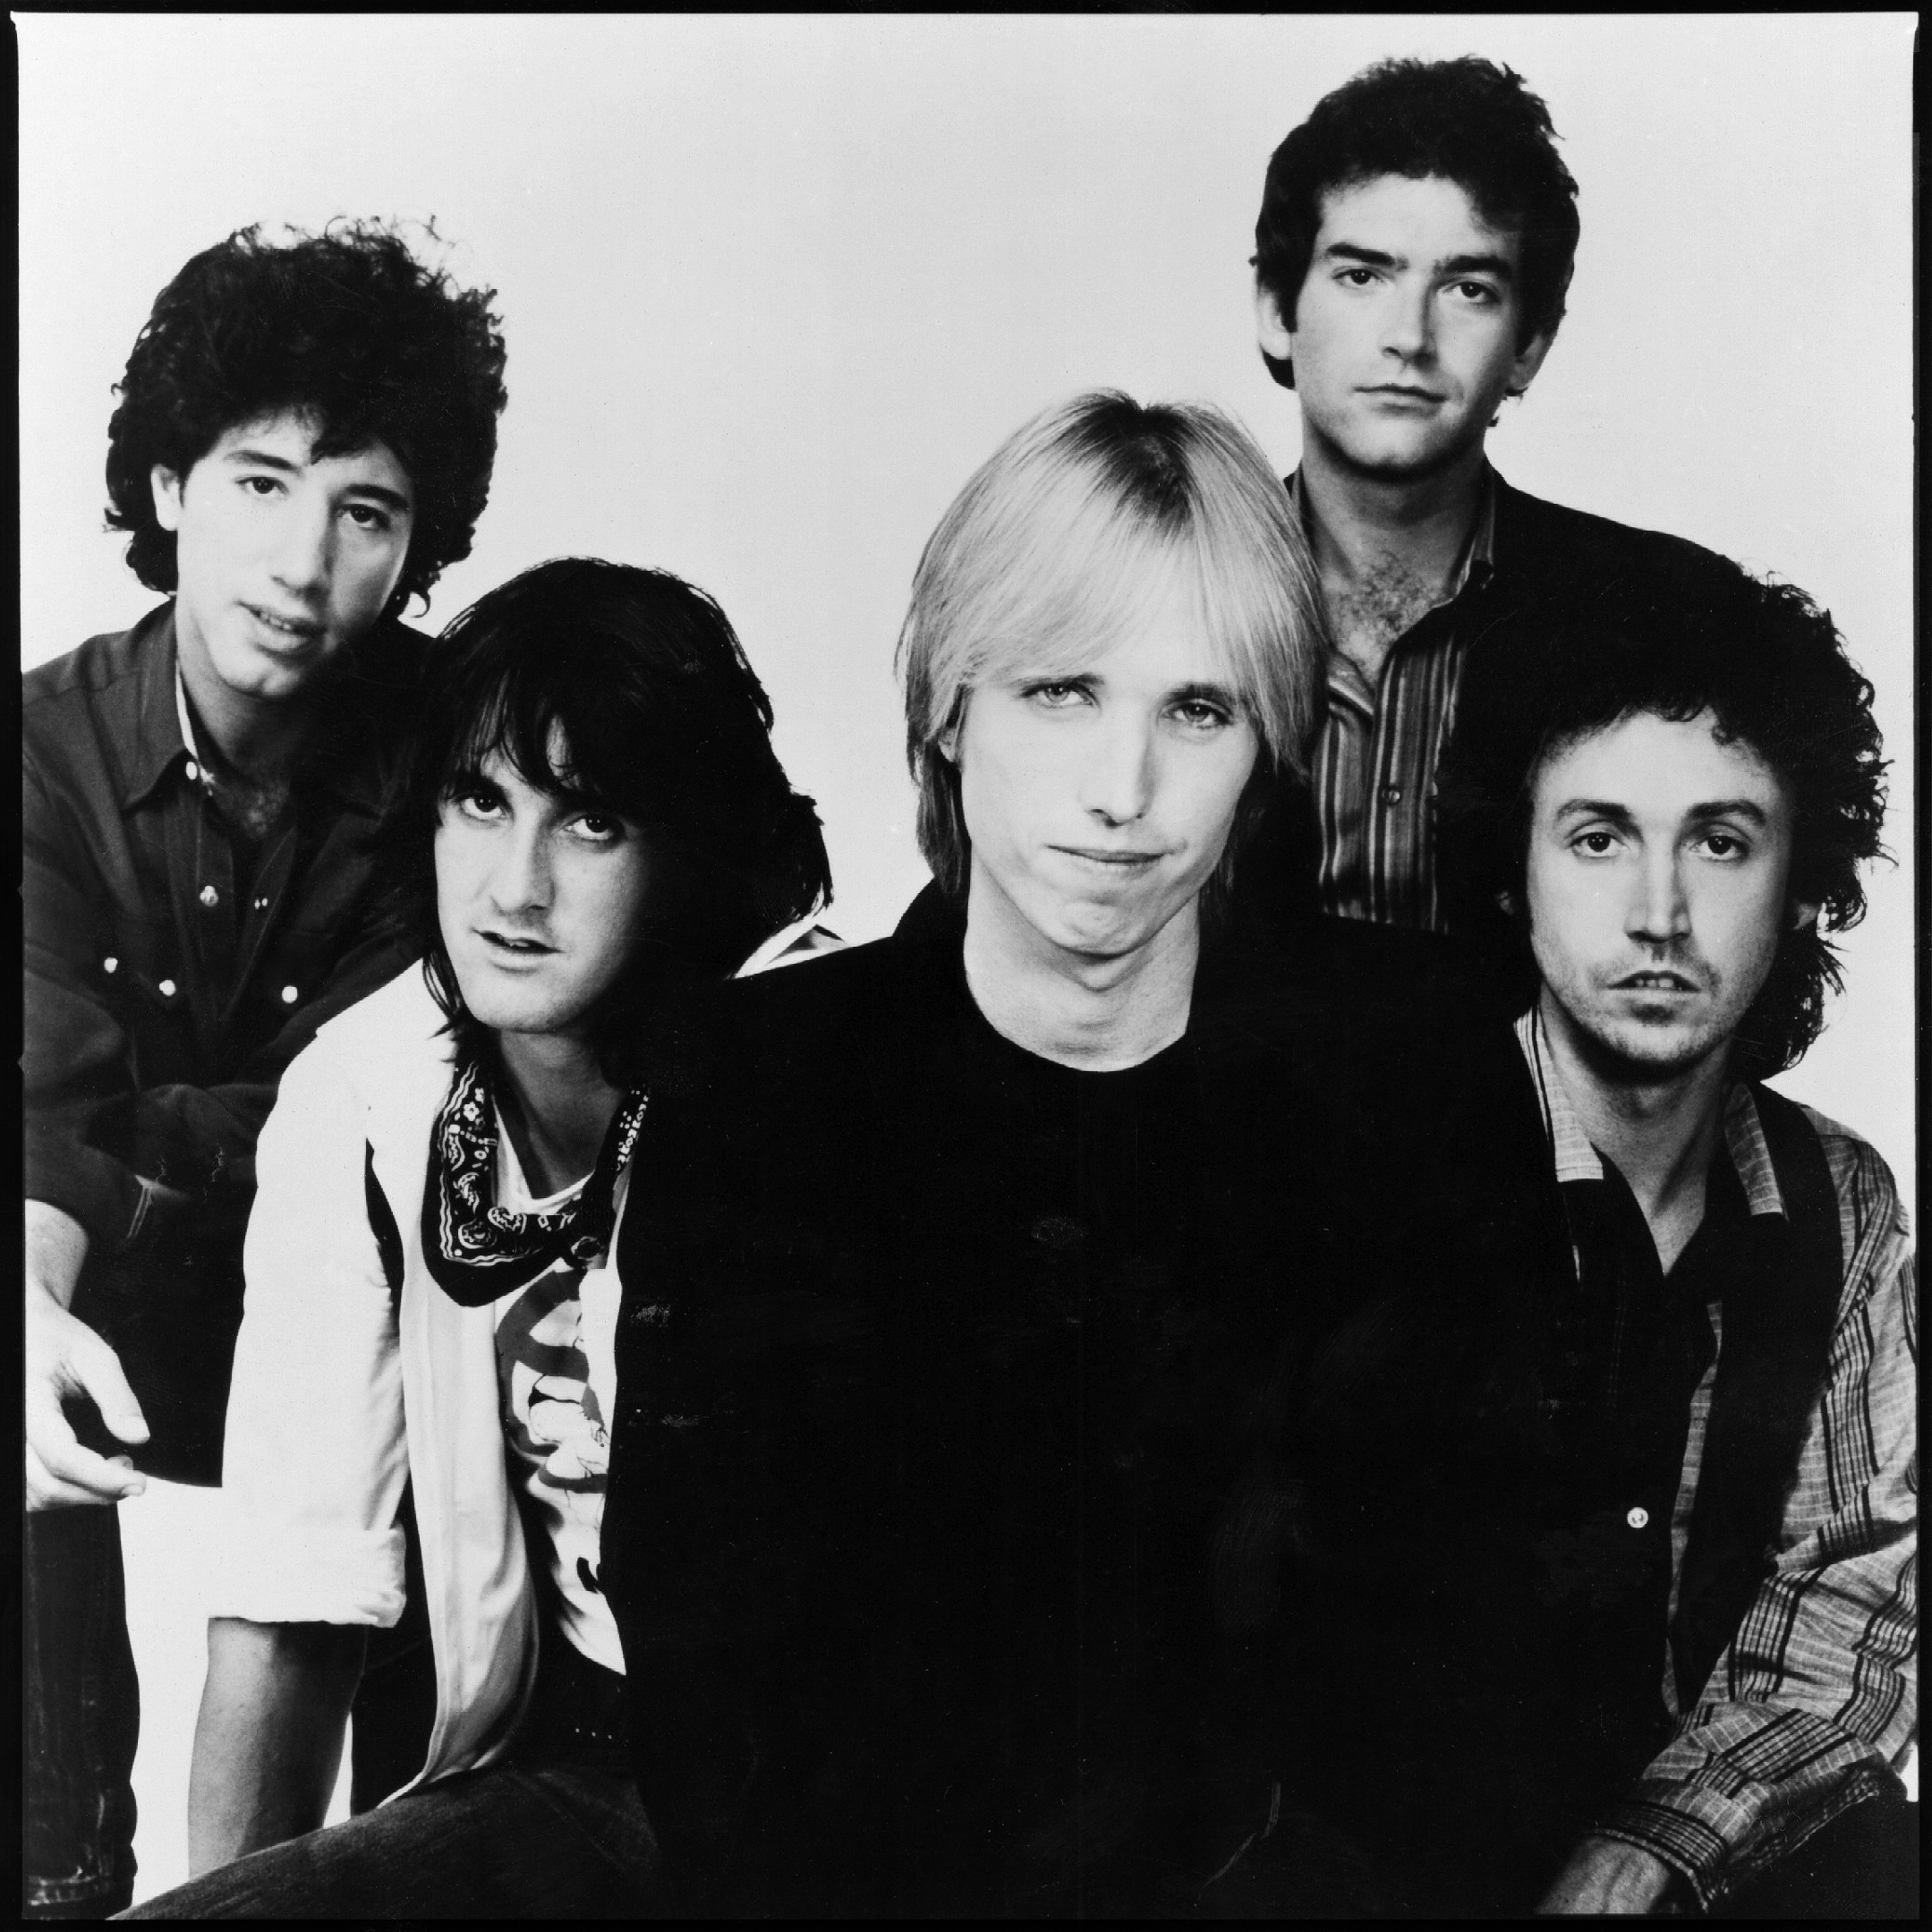 New Tom Petty Best-Of Collection to Feature Two Unreleased Songs